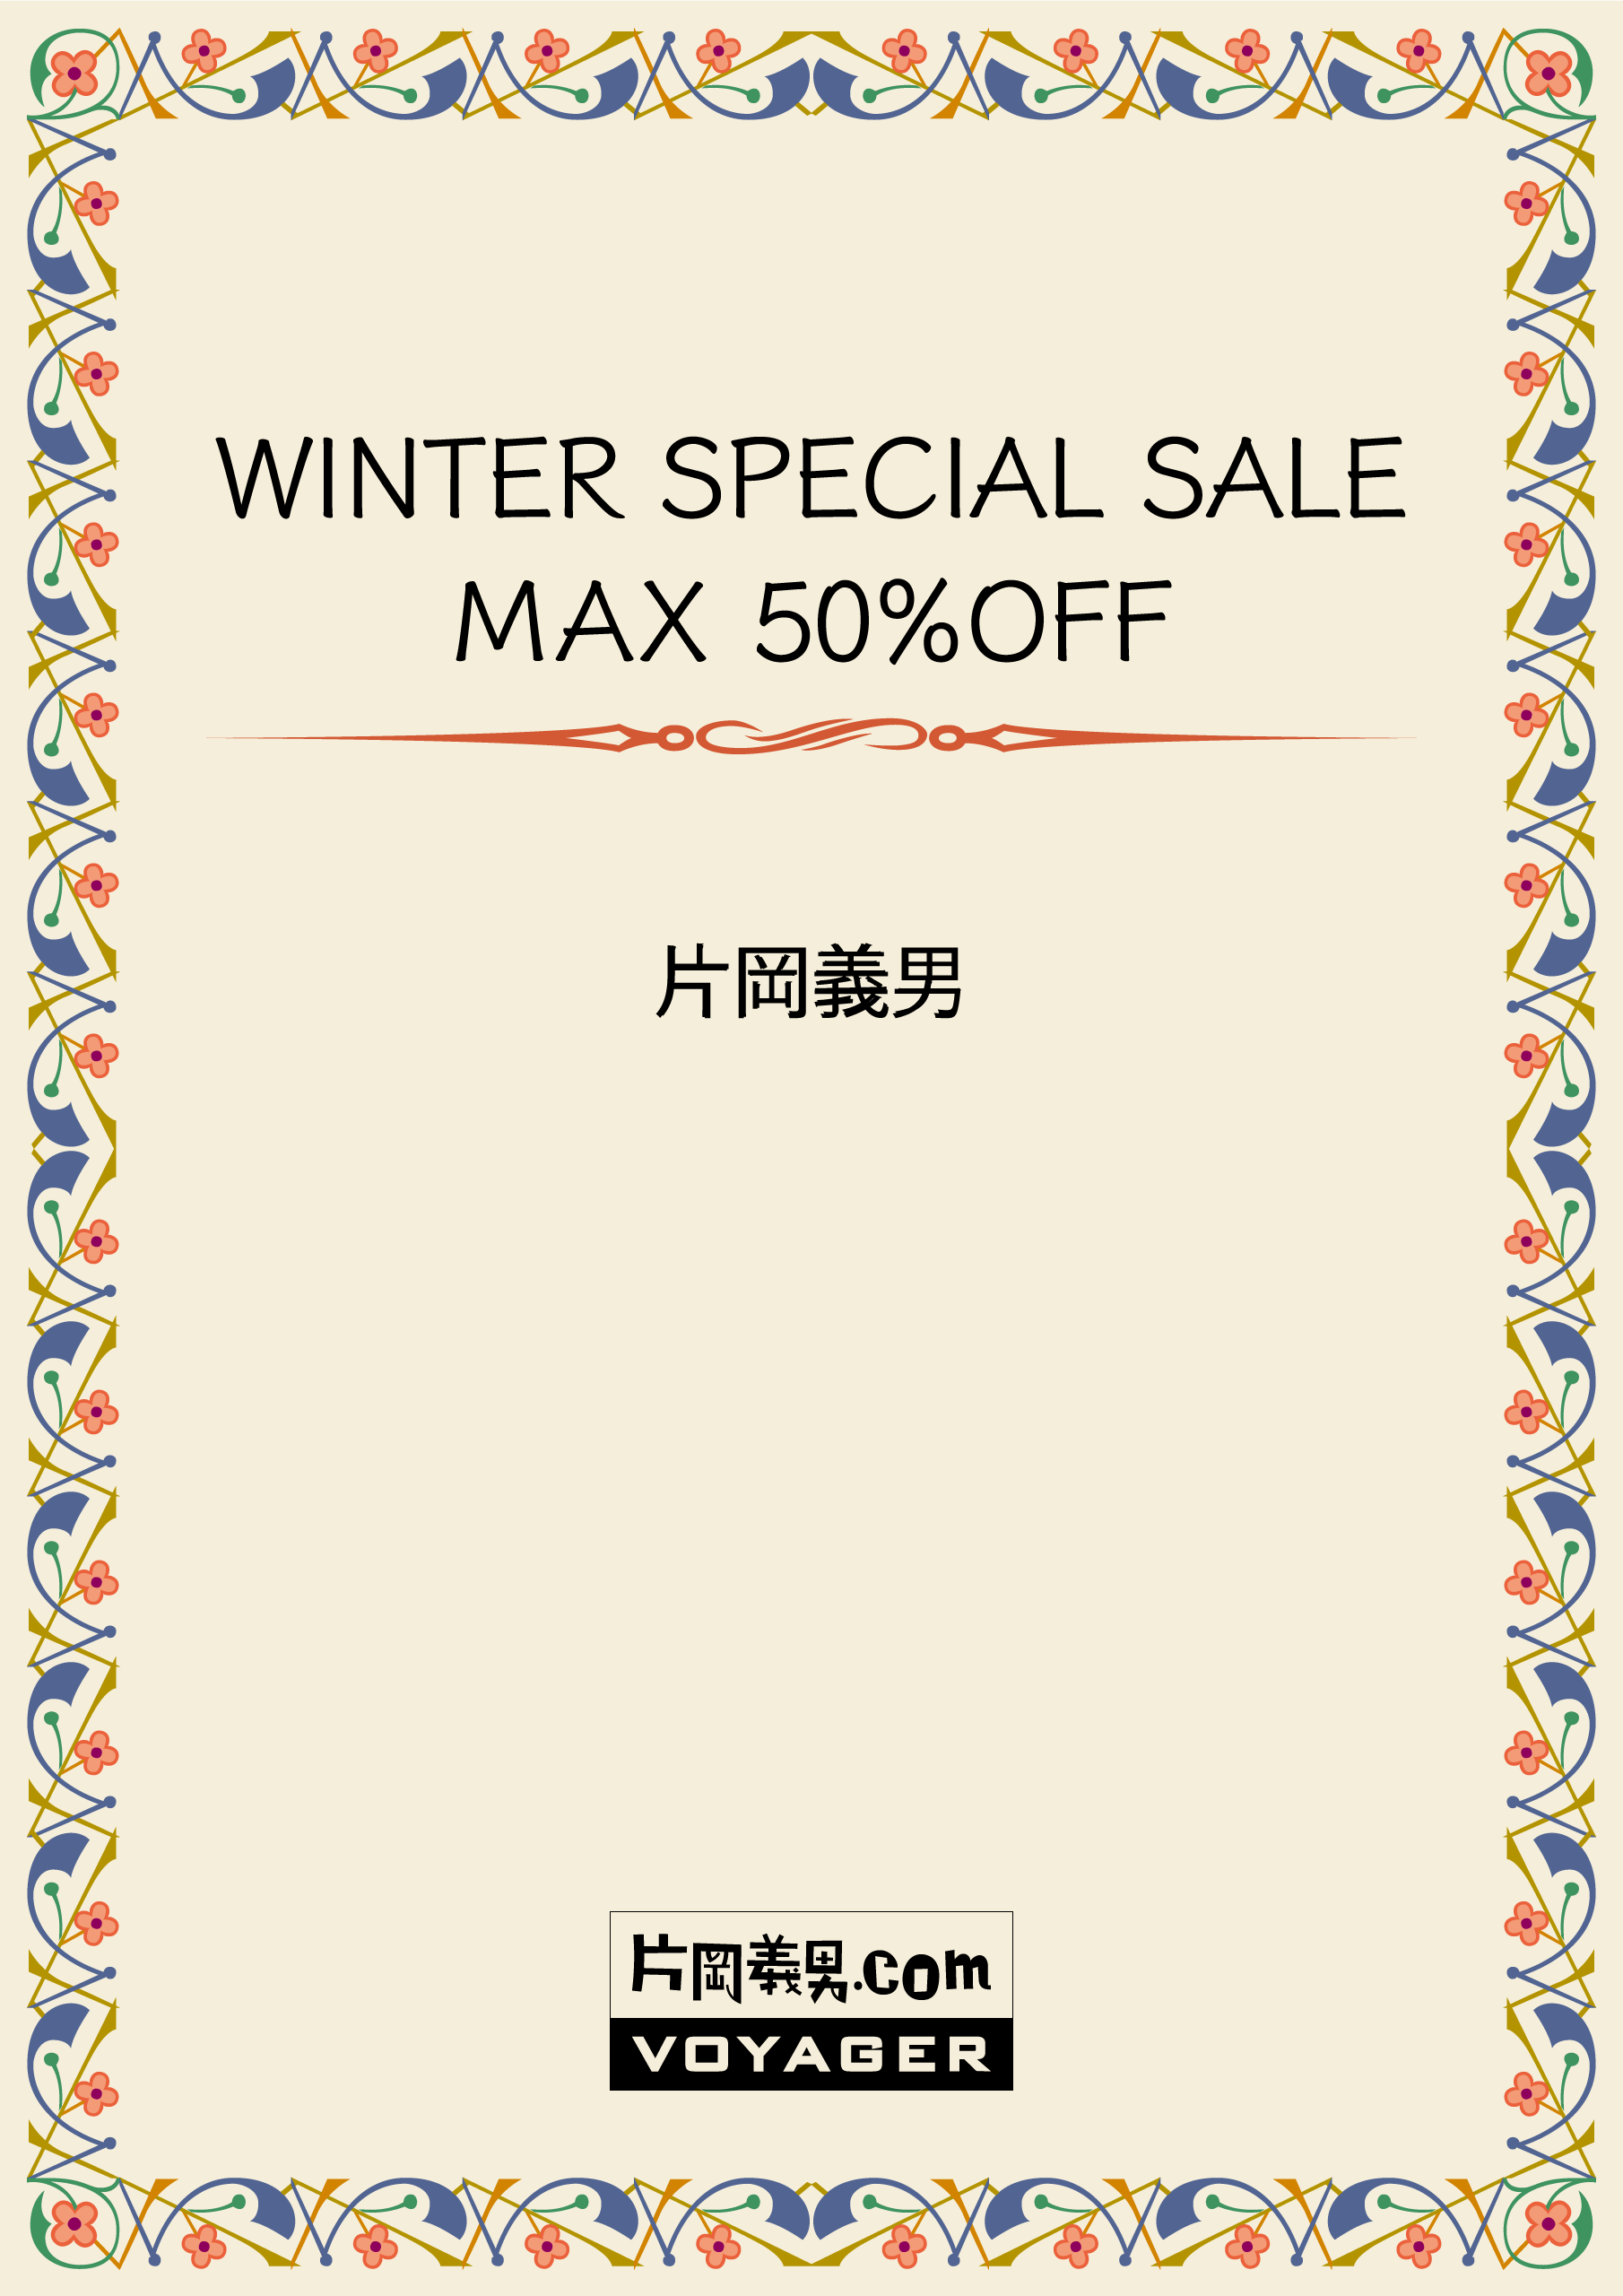 WINTER SPECIAL SALE MAX 50%OFF